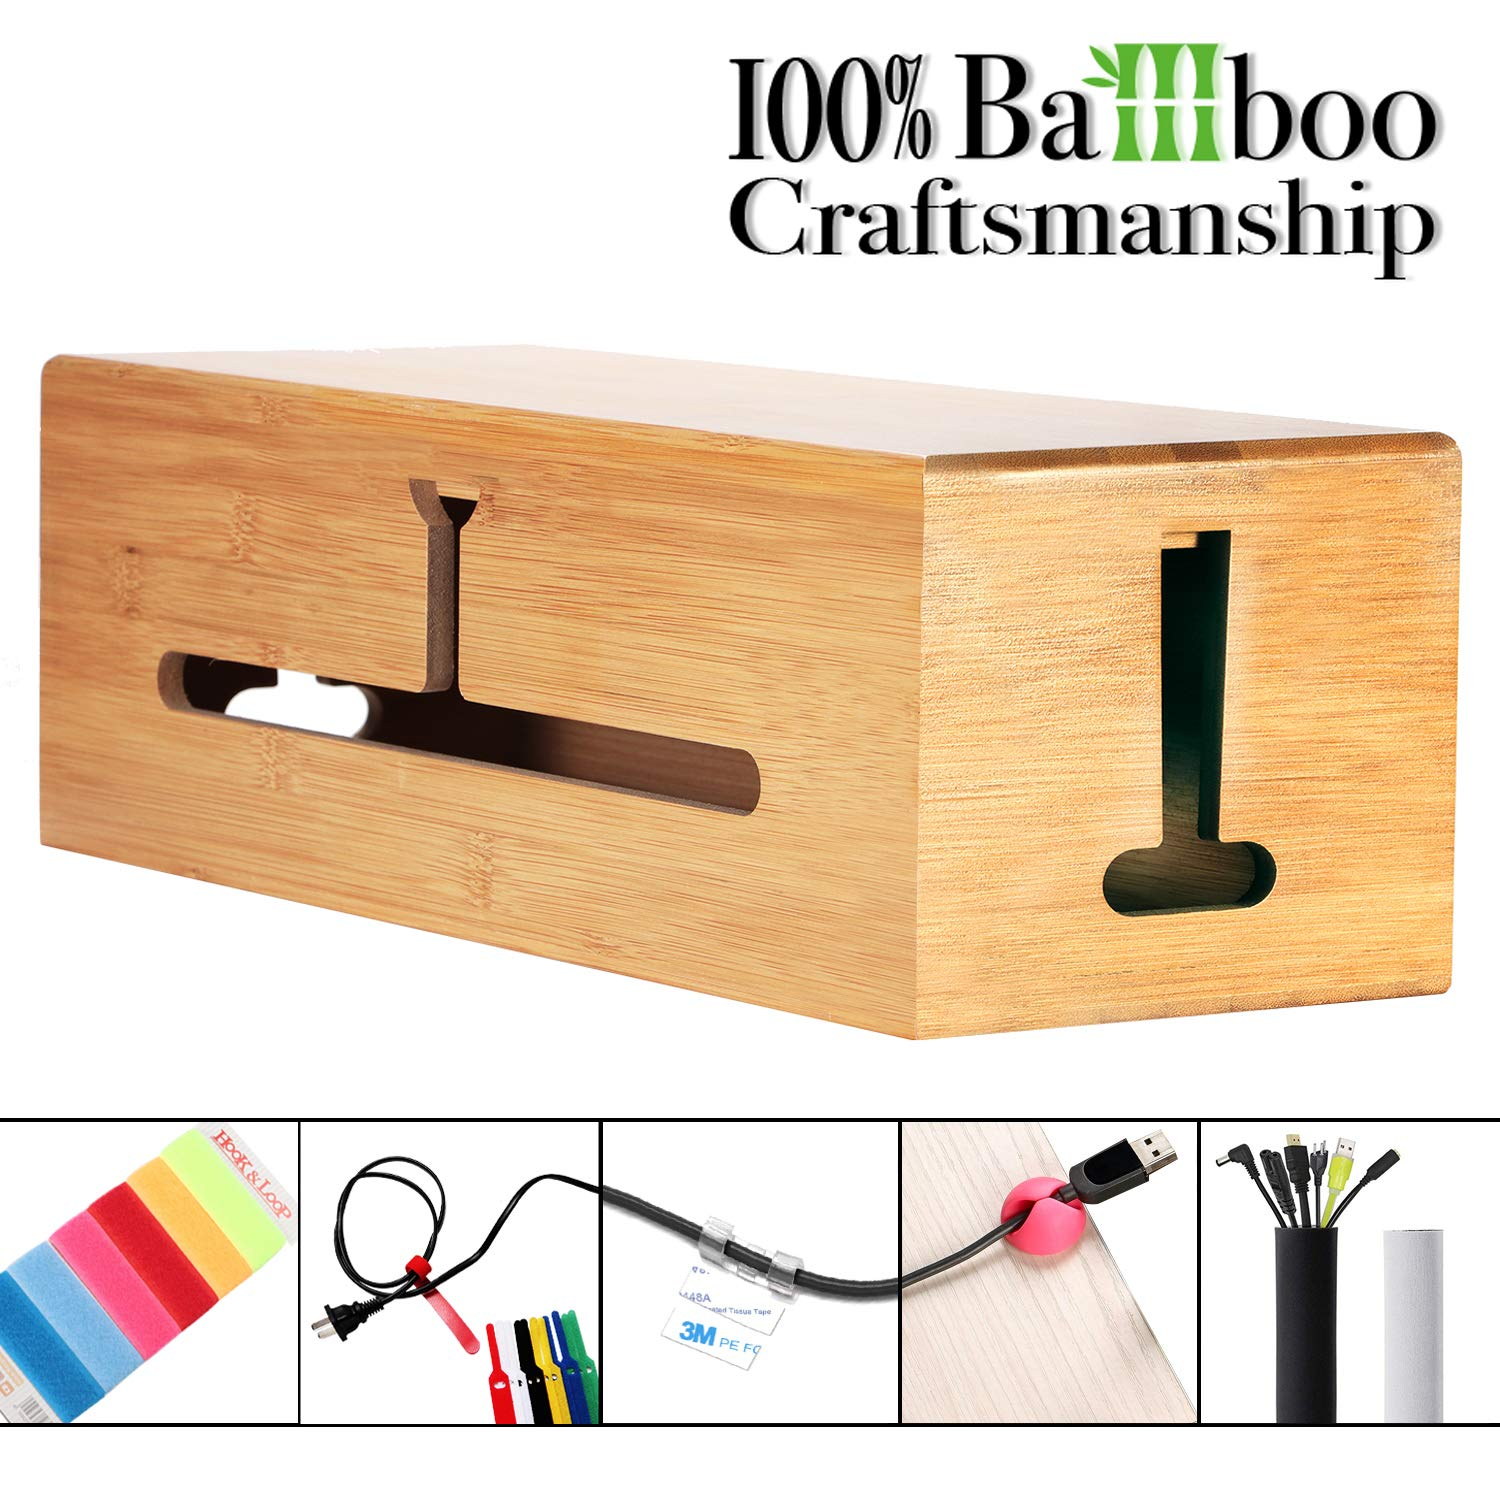 HomeBliss Bamboo Large Cable Box - Stylish Cord Organizer Cable Management Box for Cord Hider and Cord Management - Protector with Cable Sleeve (Bamboo - Large)